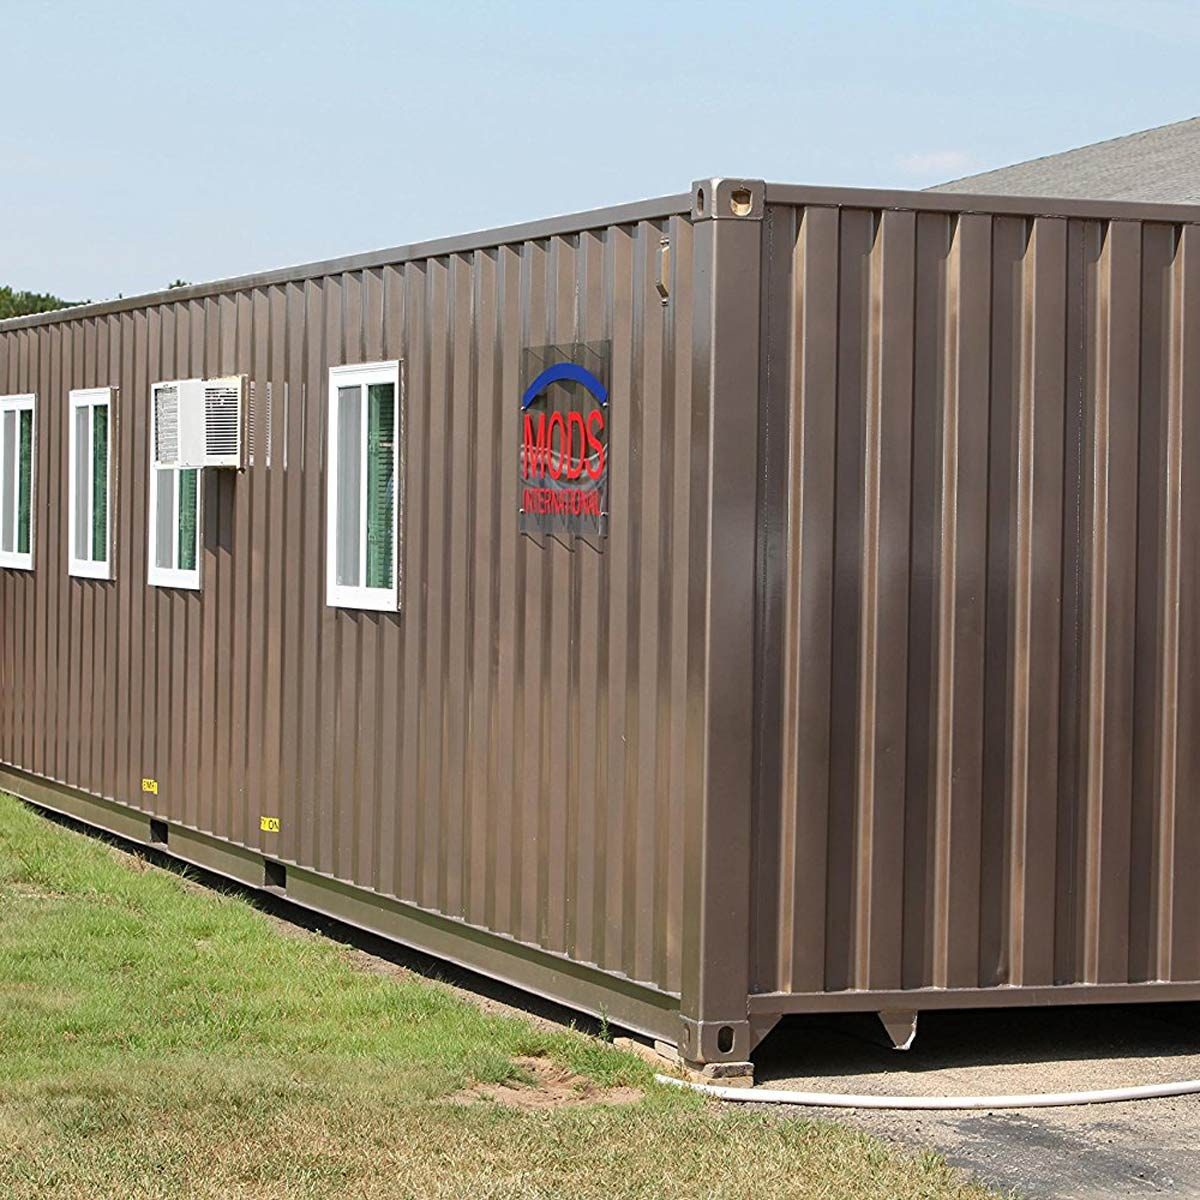 Amazon Container House: Built to Code